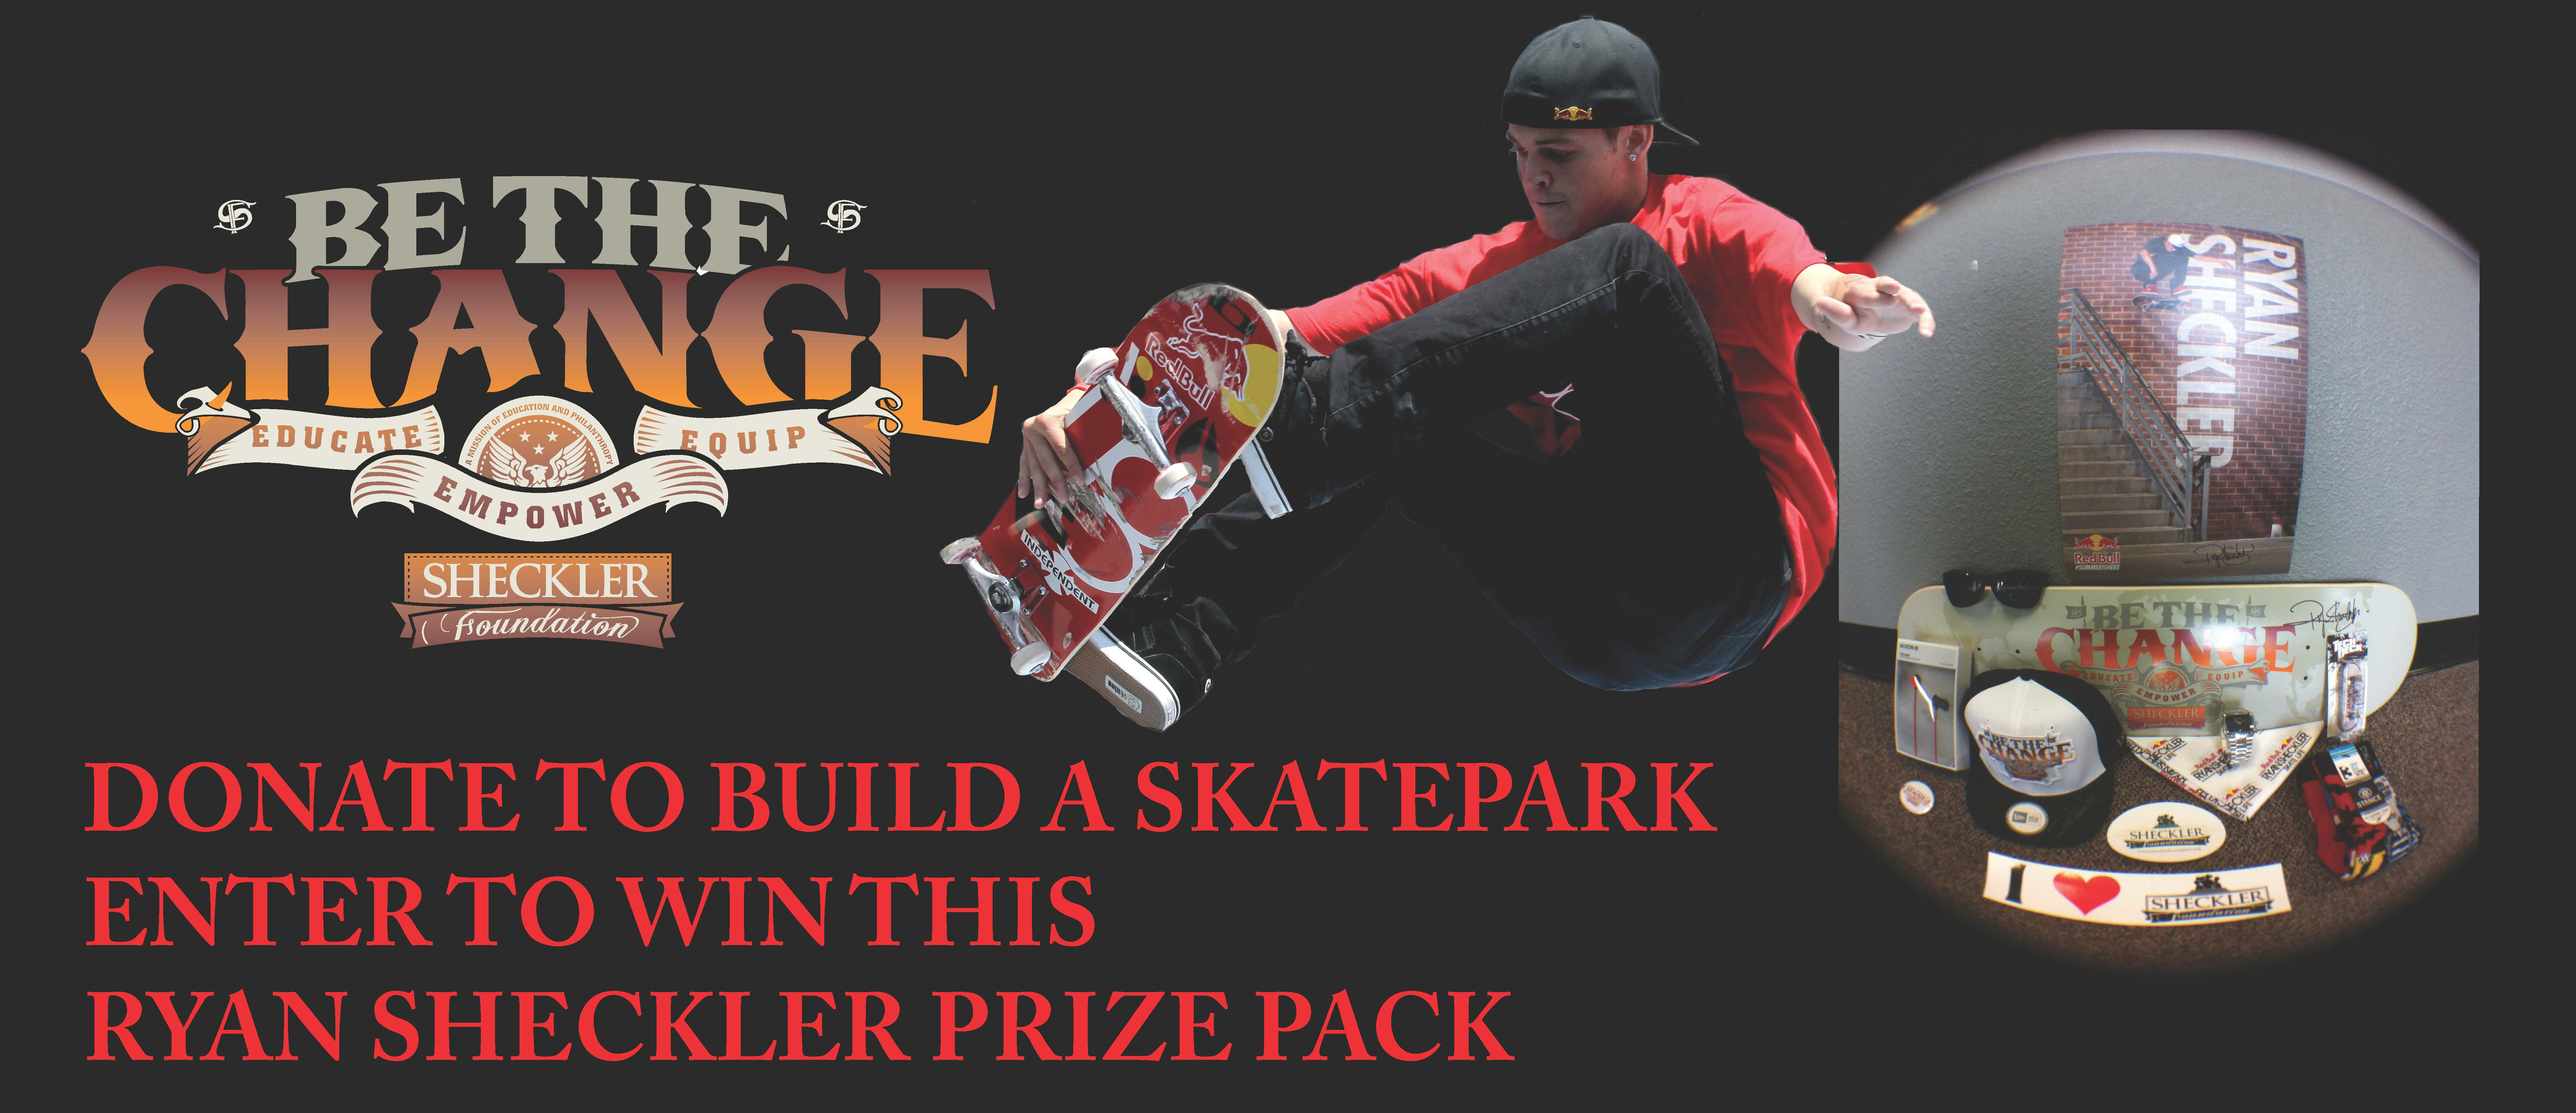 HELP RYAN SHECKLER'S FOUNDATION BUILD A SKATEPARK ON THE PORT GAMBLE SKLALLAM RESERVATION